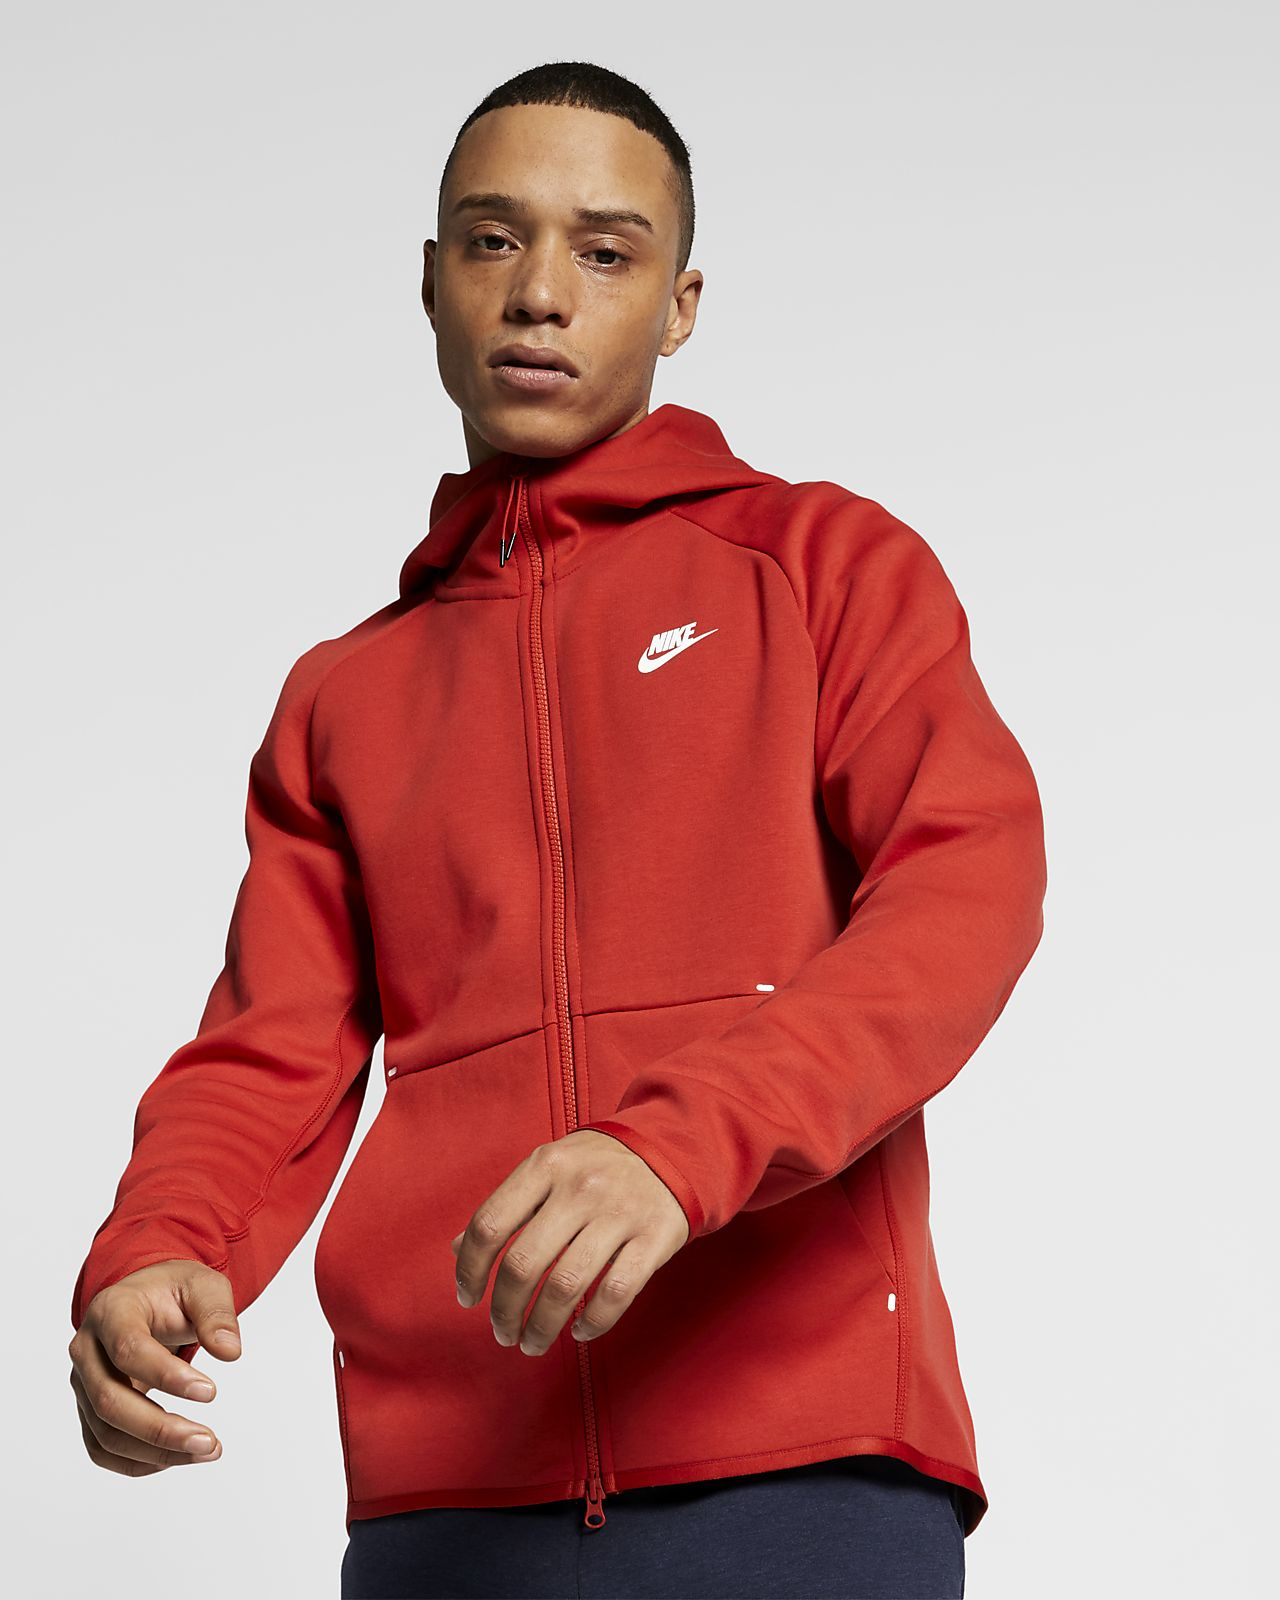 83368ead6f2f8 Nike Sportswear Tech Fleece Men s Full-Zip Hoodie. Nike.com